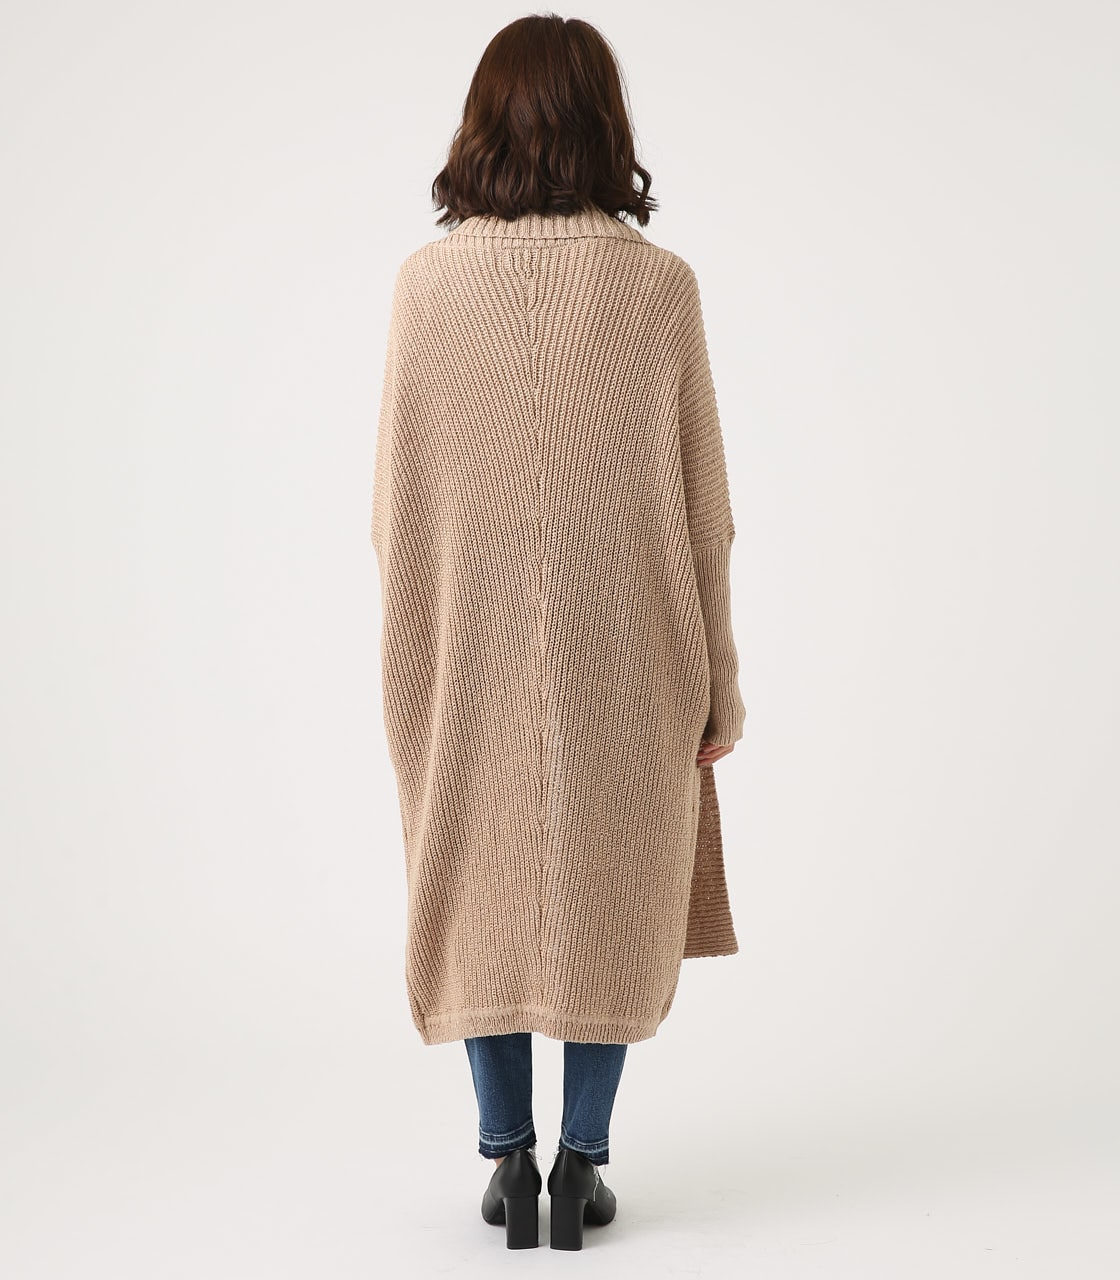 BIG SHAWL TOPPER CARDIGAN 詳細画像 BEG 7